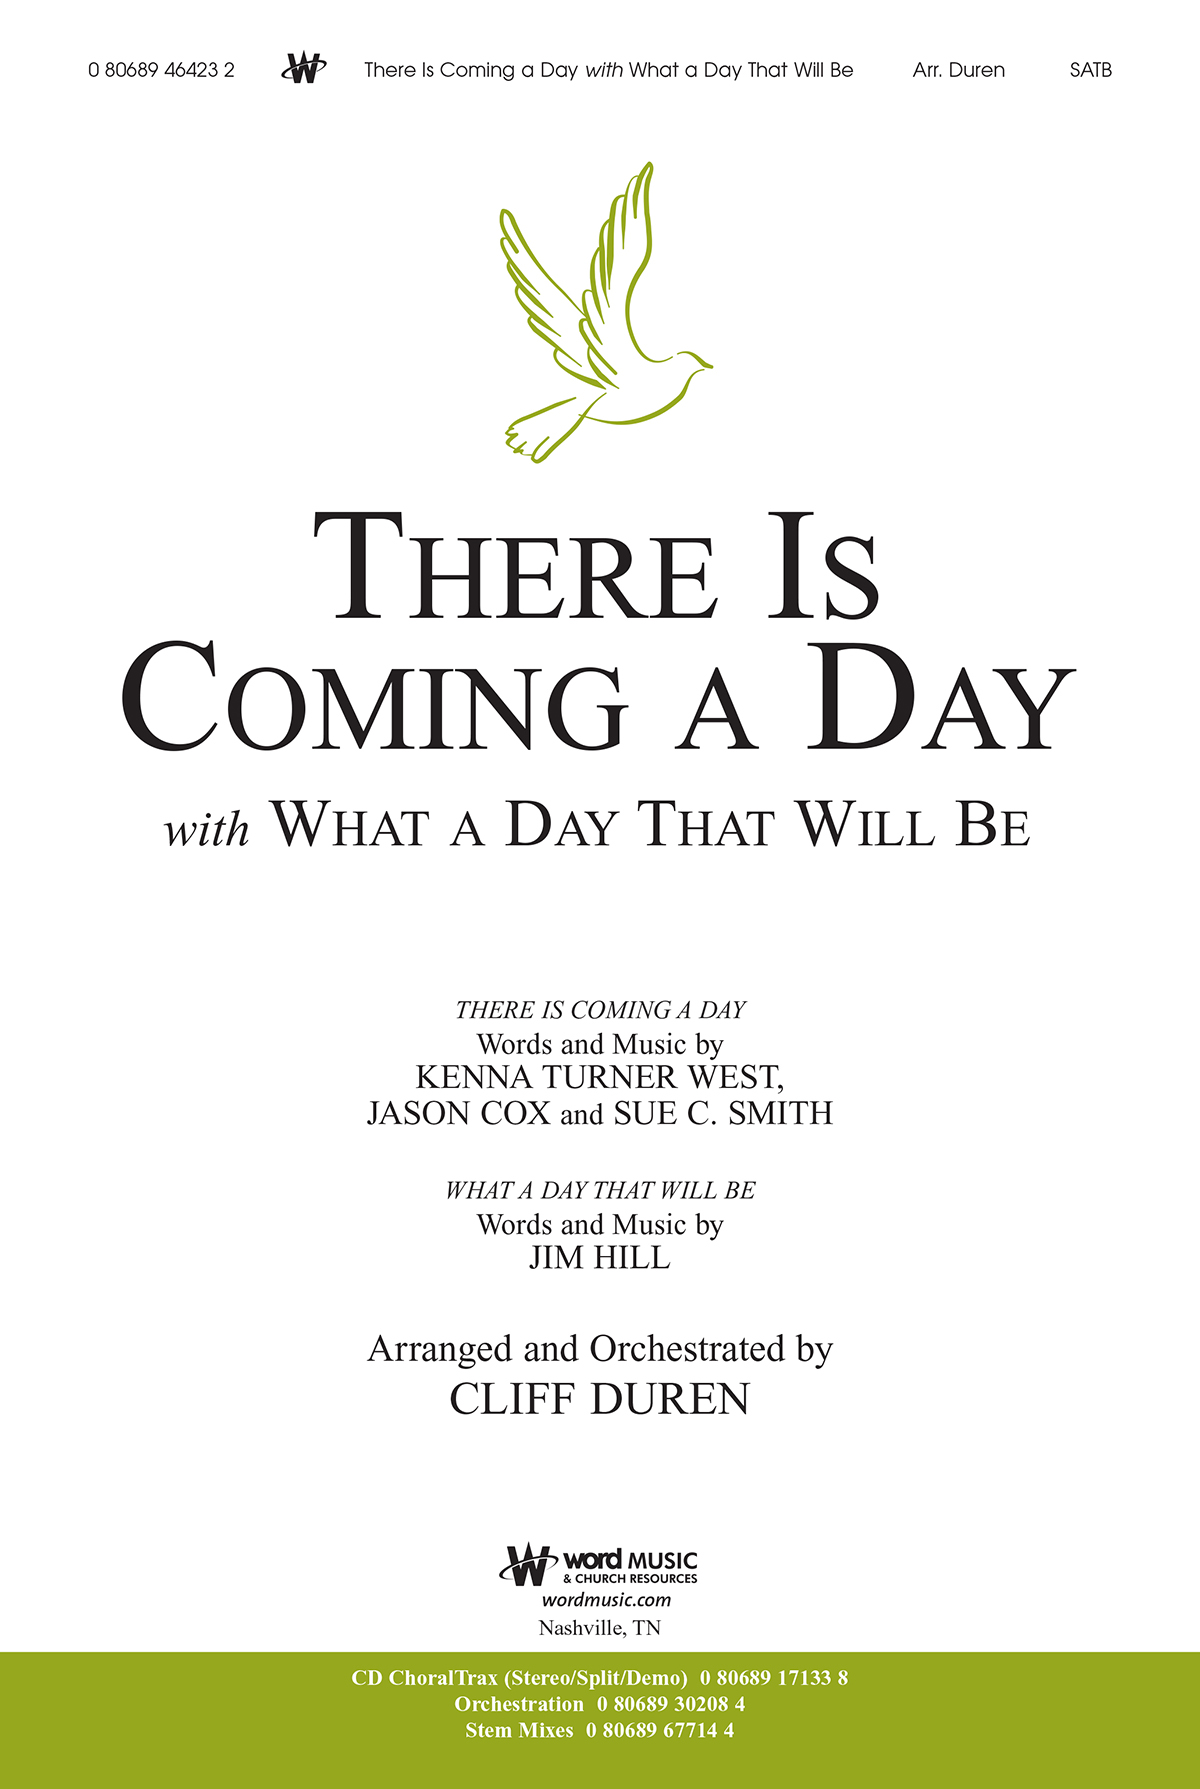 There Is Coming a Day with What a Day That Will Be